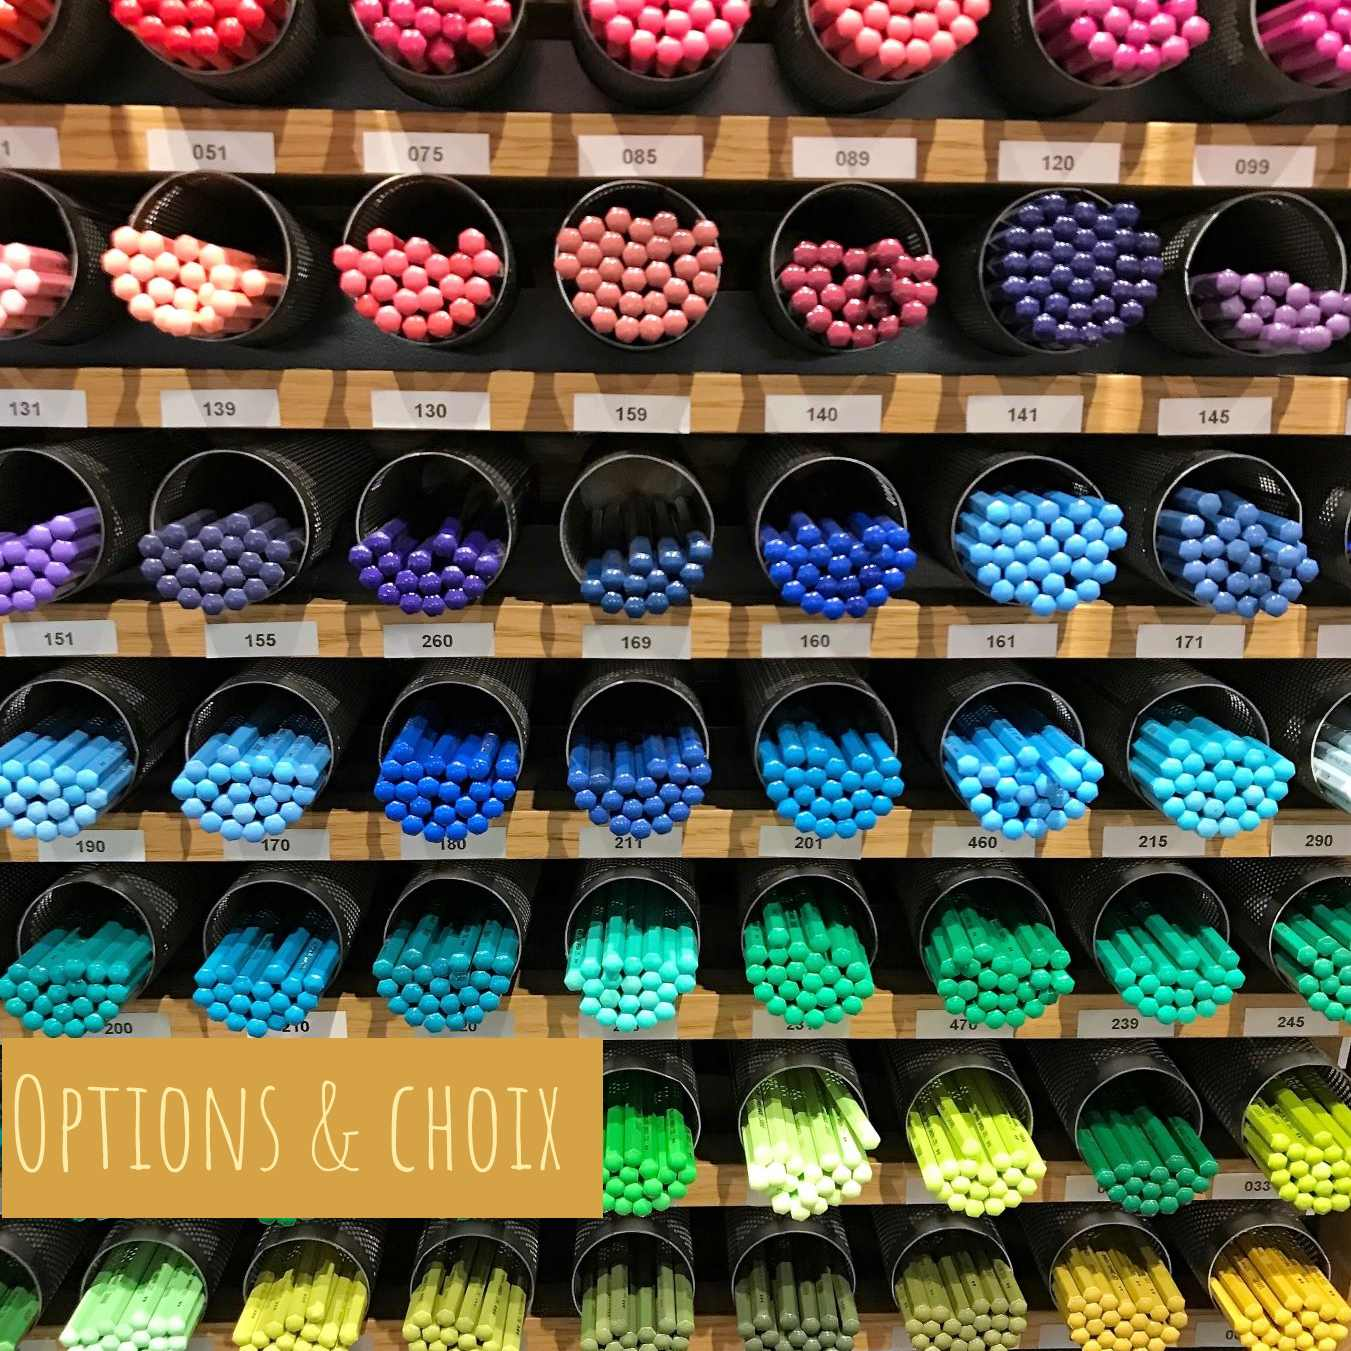 A range of multiple crayons from many different colours that illustrate the choice and the options we all have